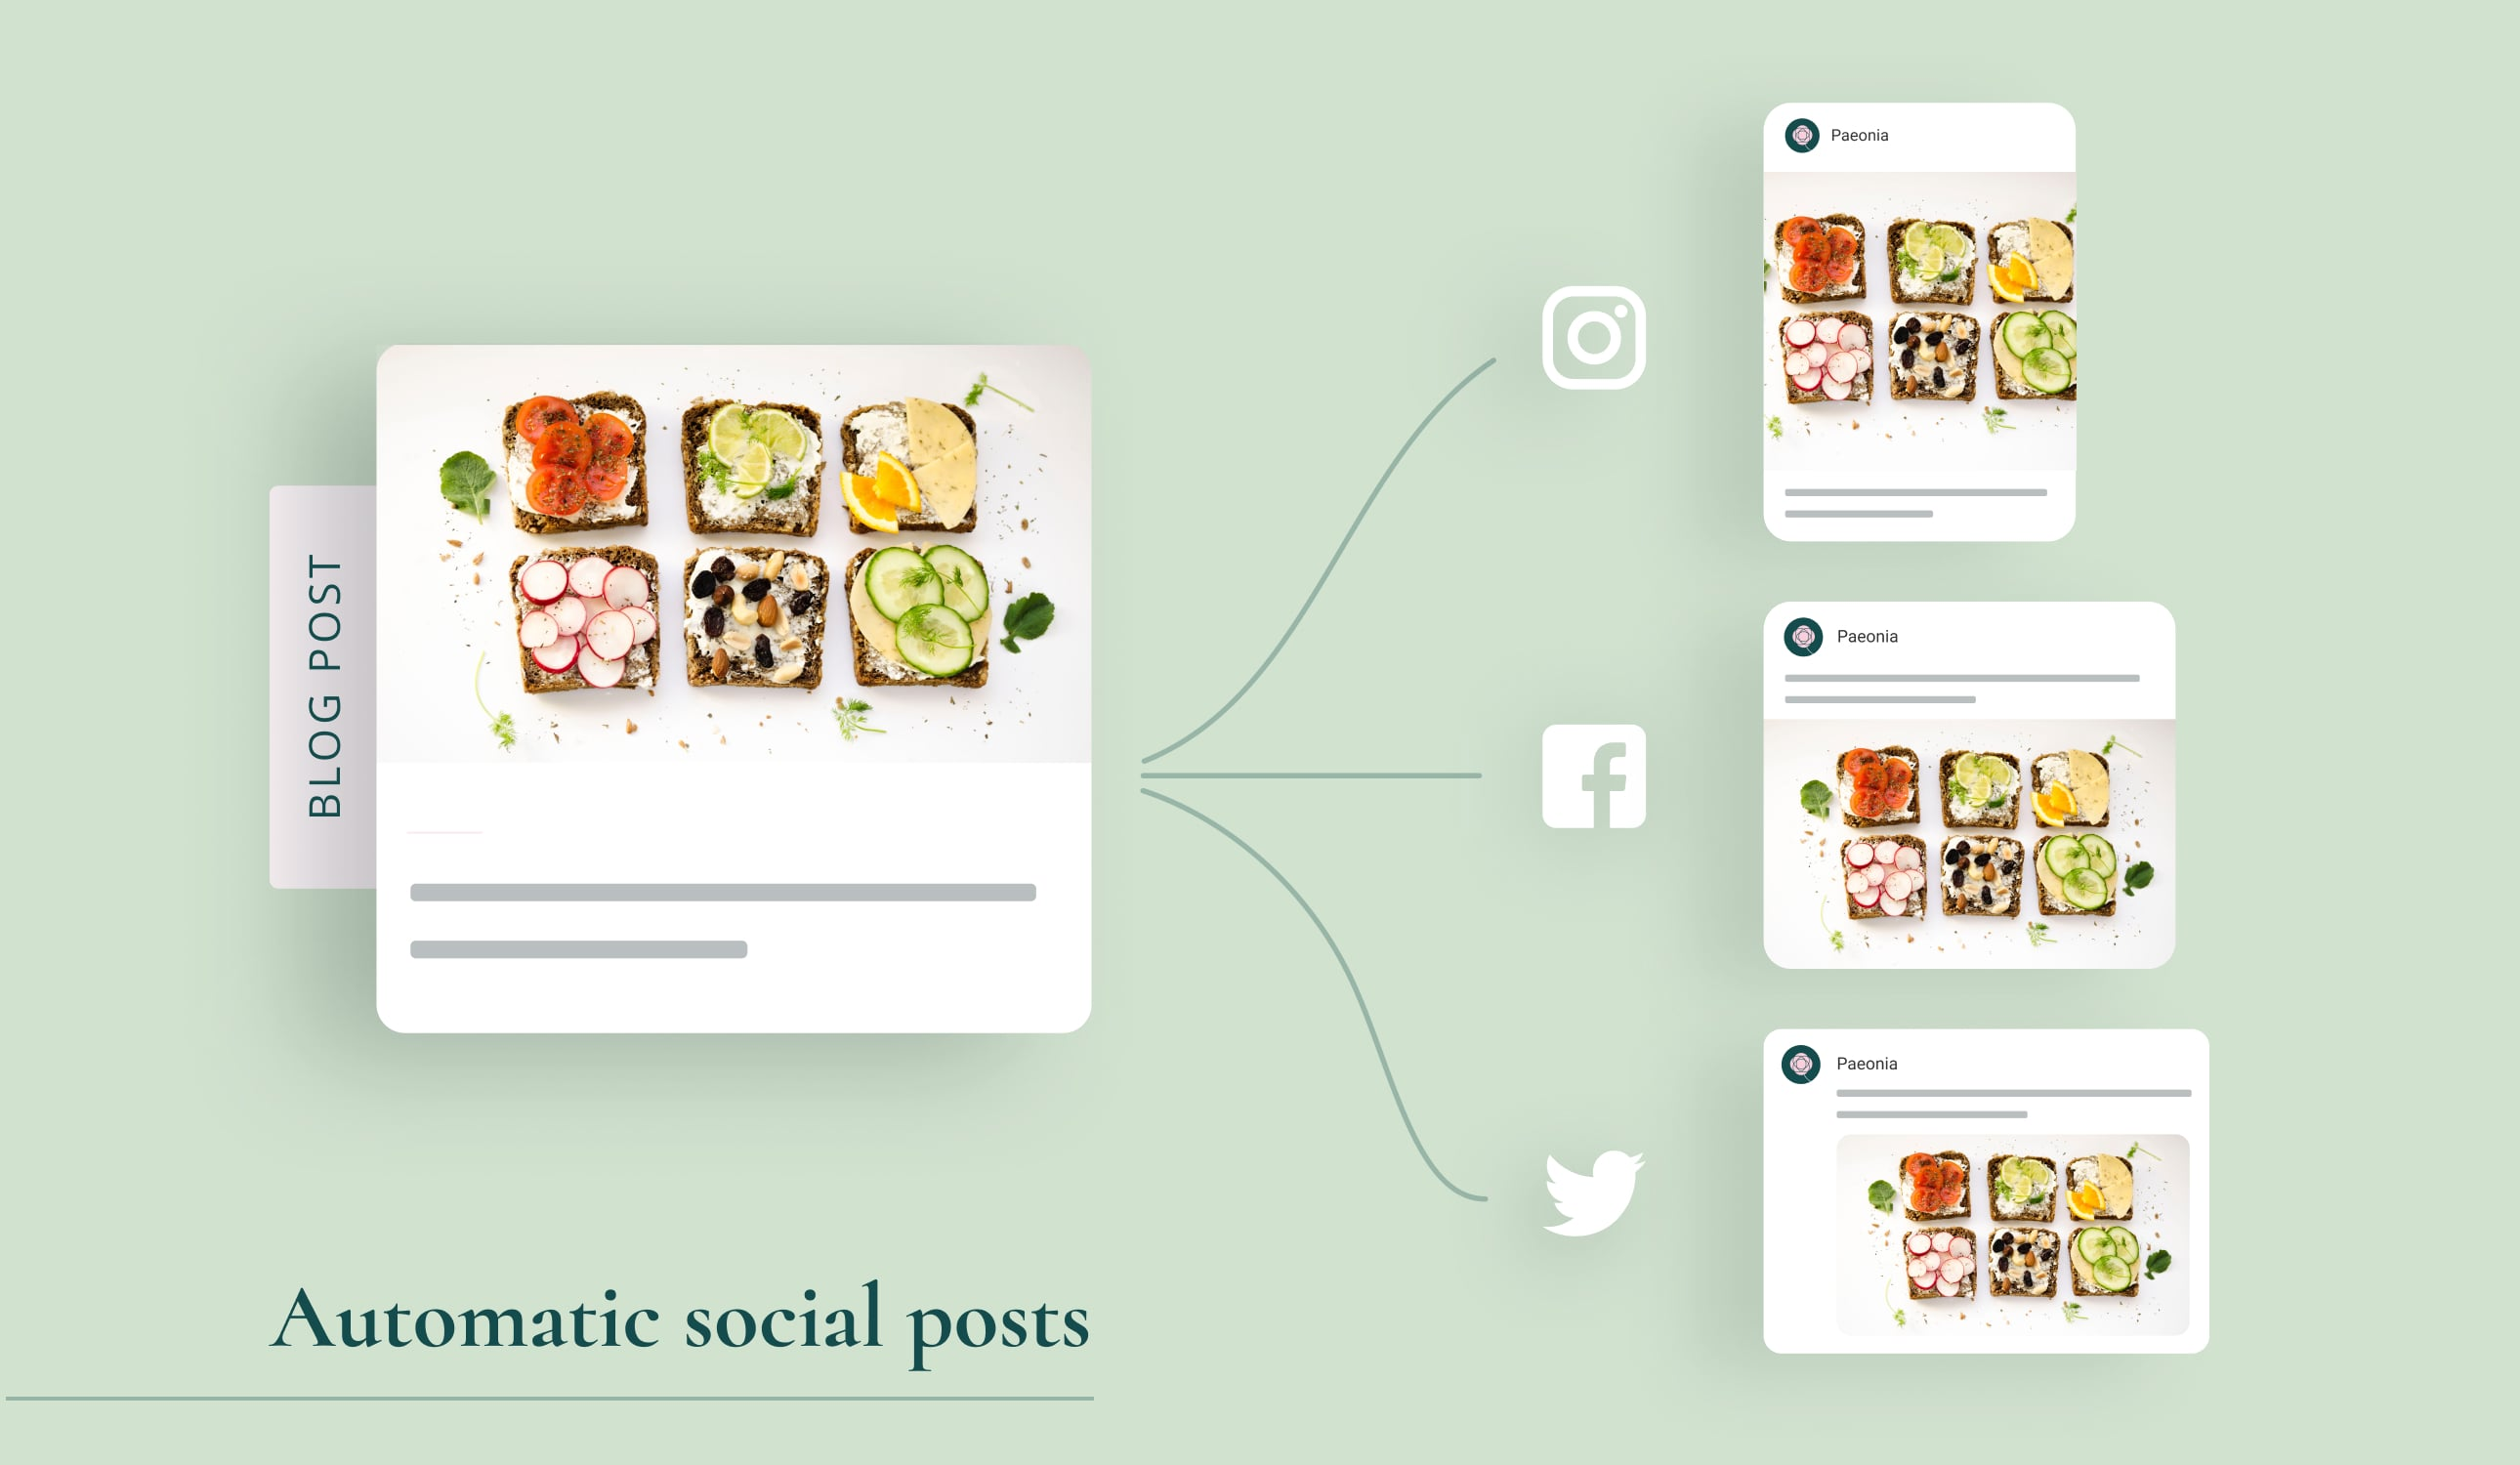 A blog post repurposed for different social media - Instagram, Facebook and Twitter.